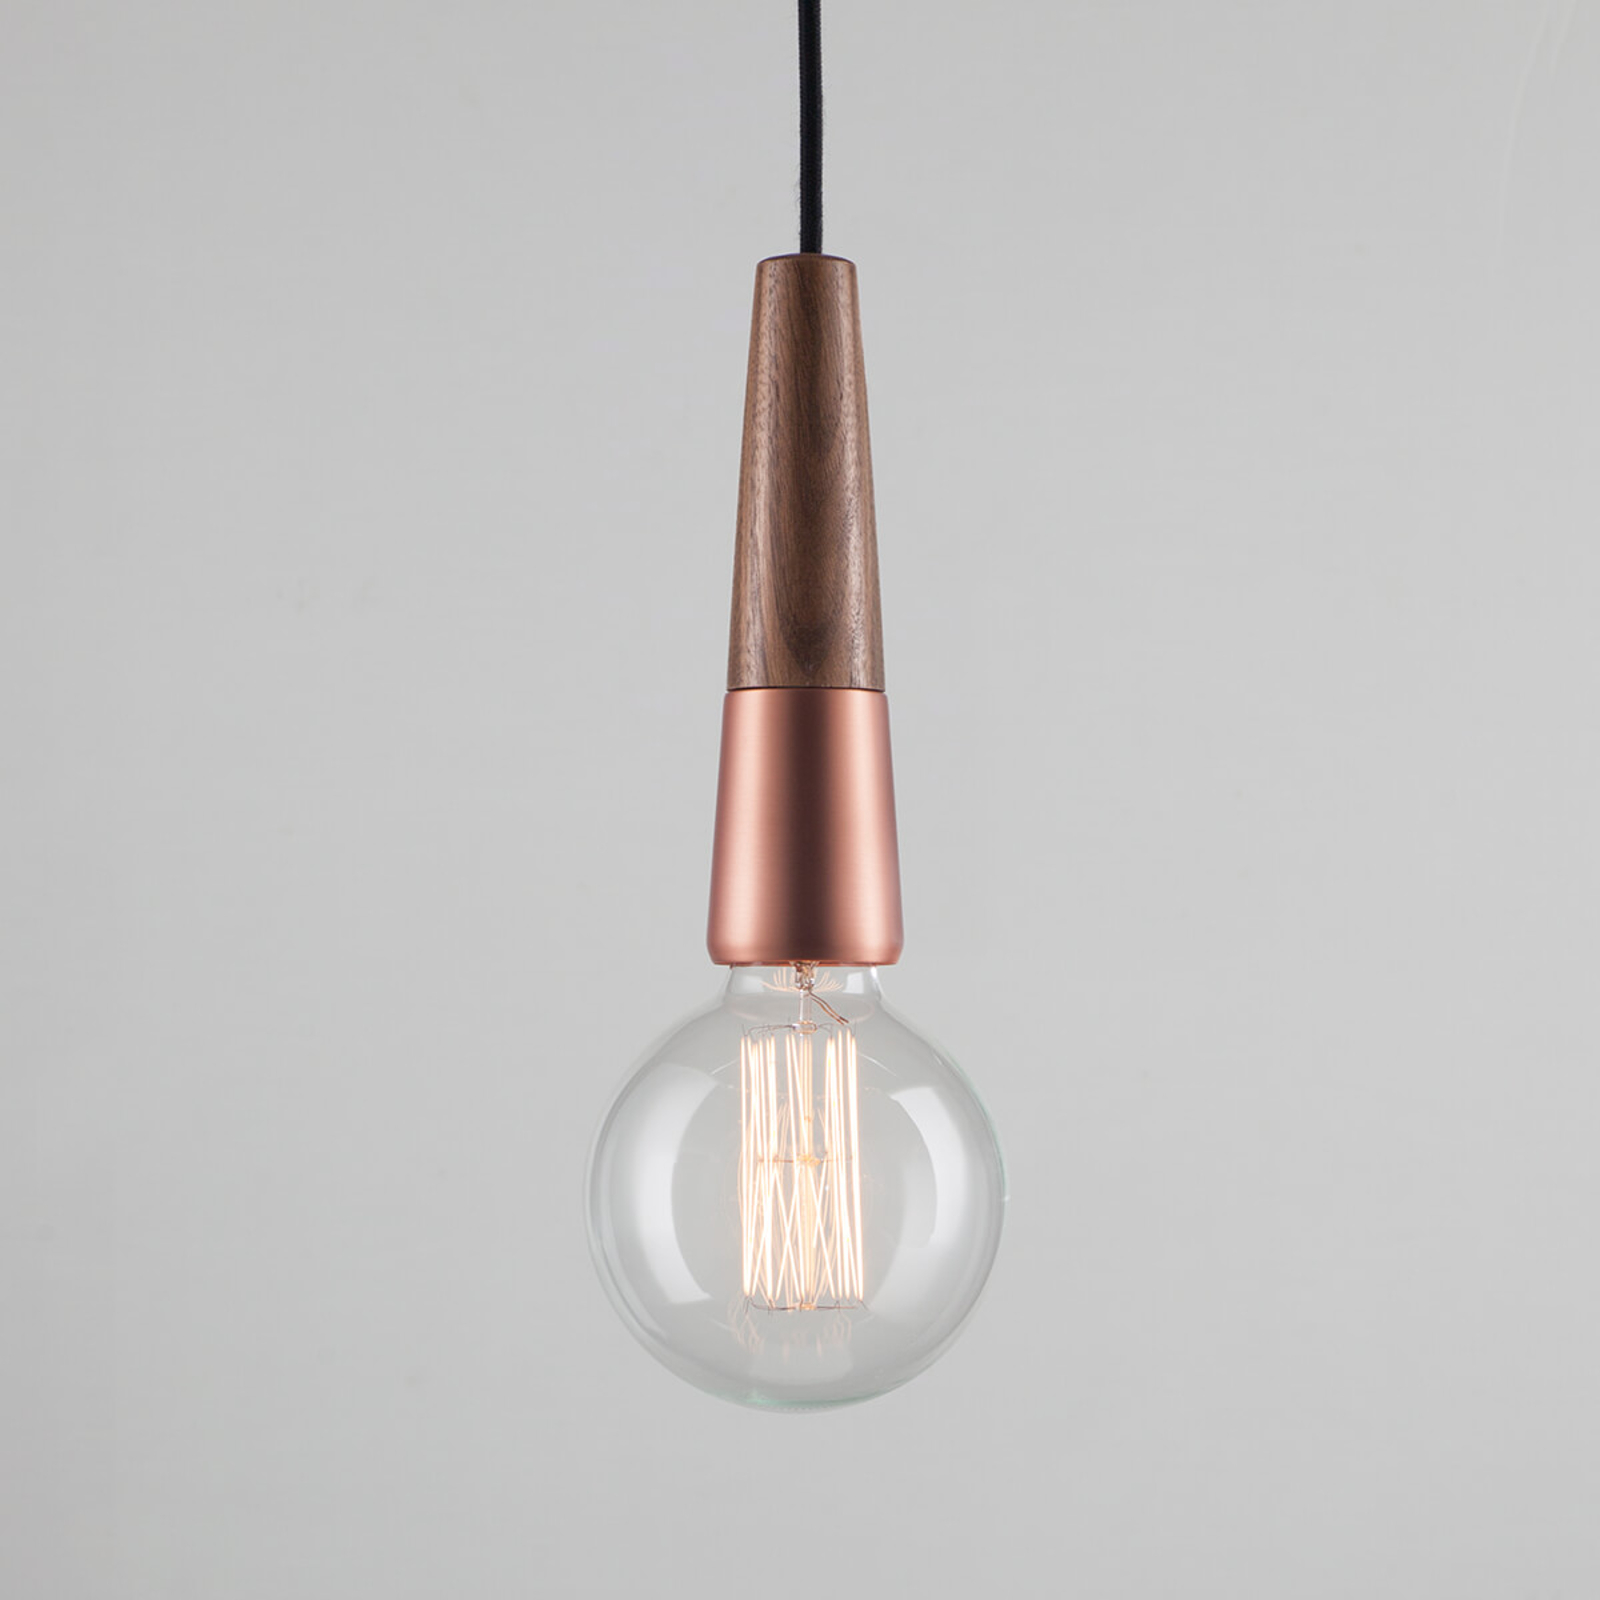 Stripped - mooie hanglamp in materiaalmix